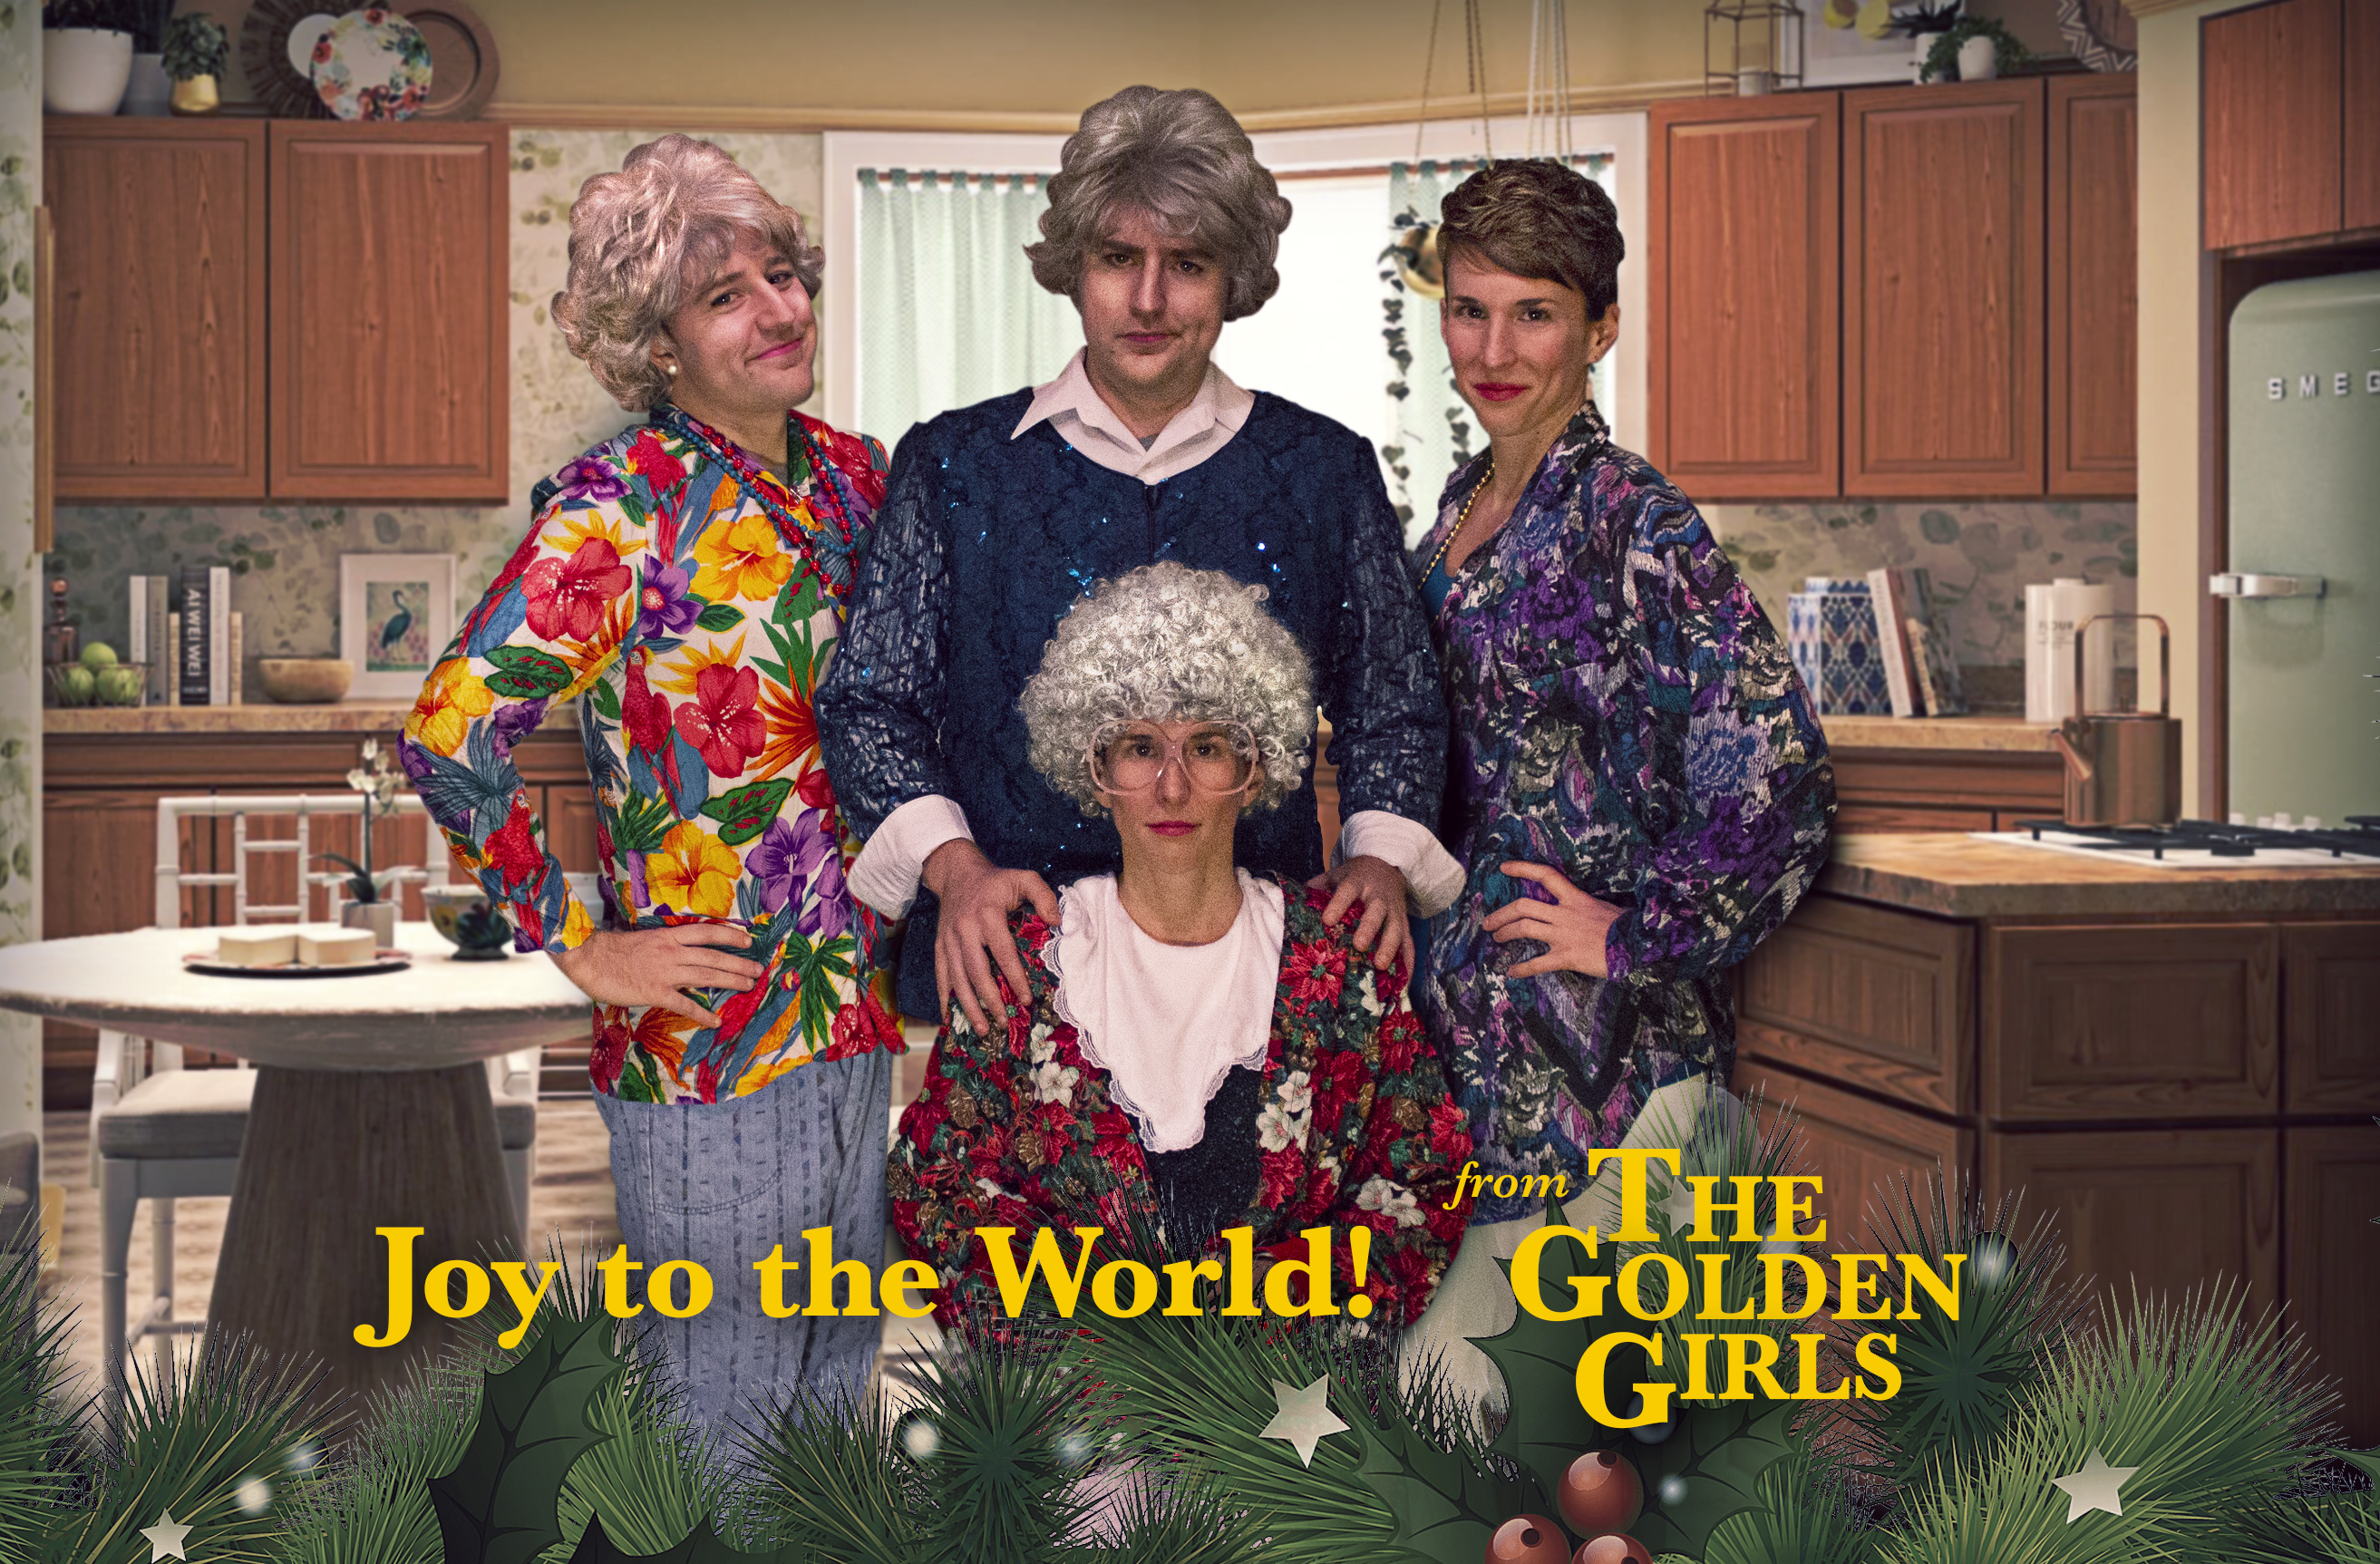 Kyle and Ali dressed as the 4 women from the Golden Girls.  Joy to the world! From The Golden Girls.